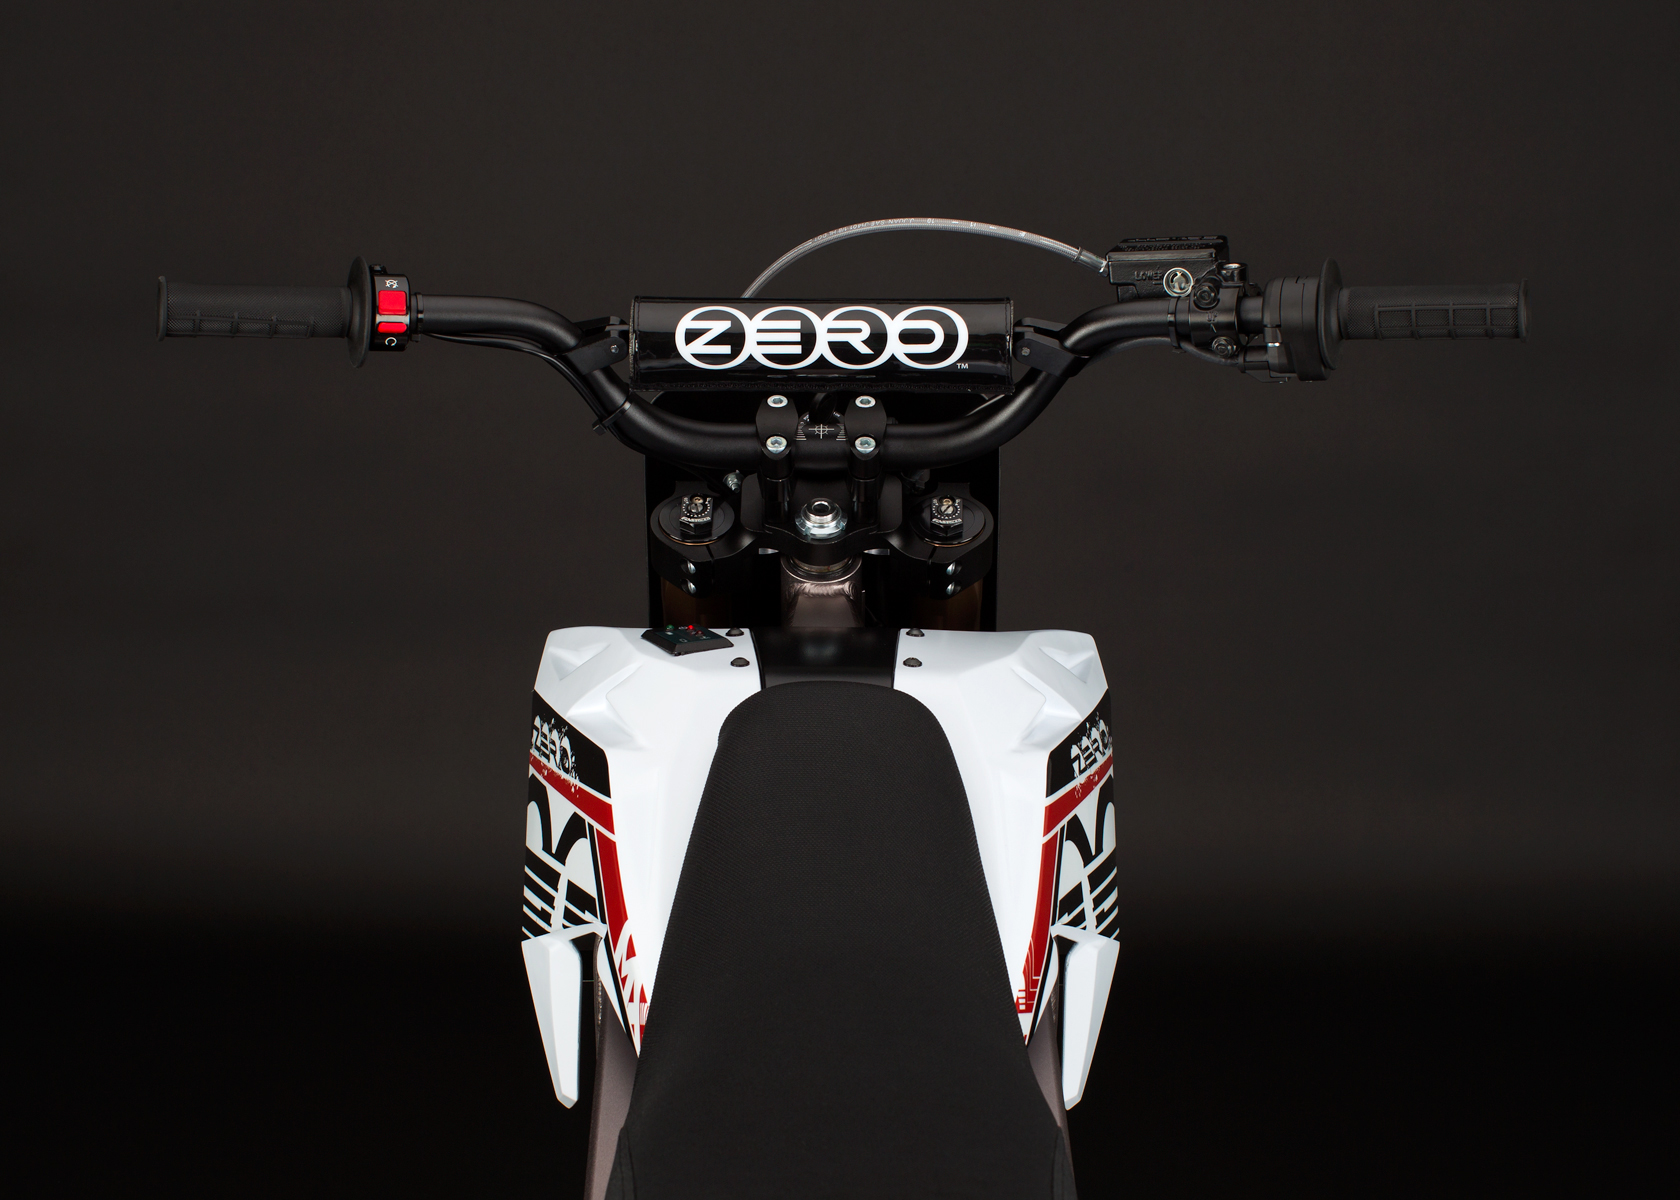 '.2012 Zero MX Electric Motorcycle: Handlebars.'